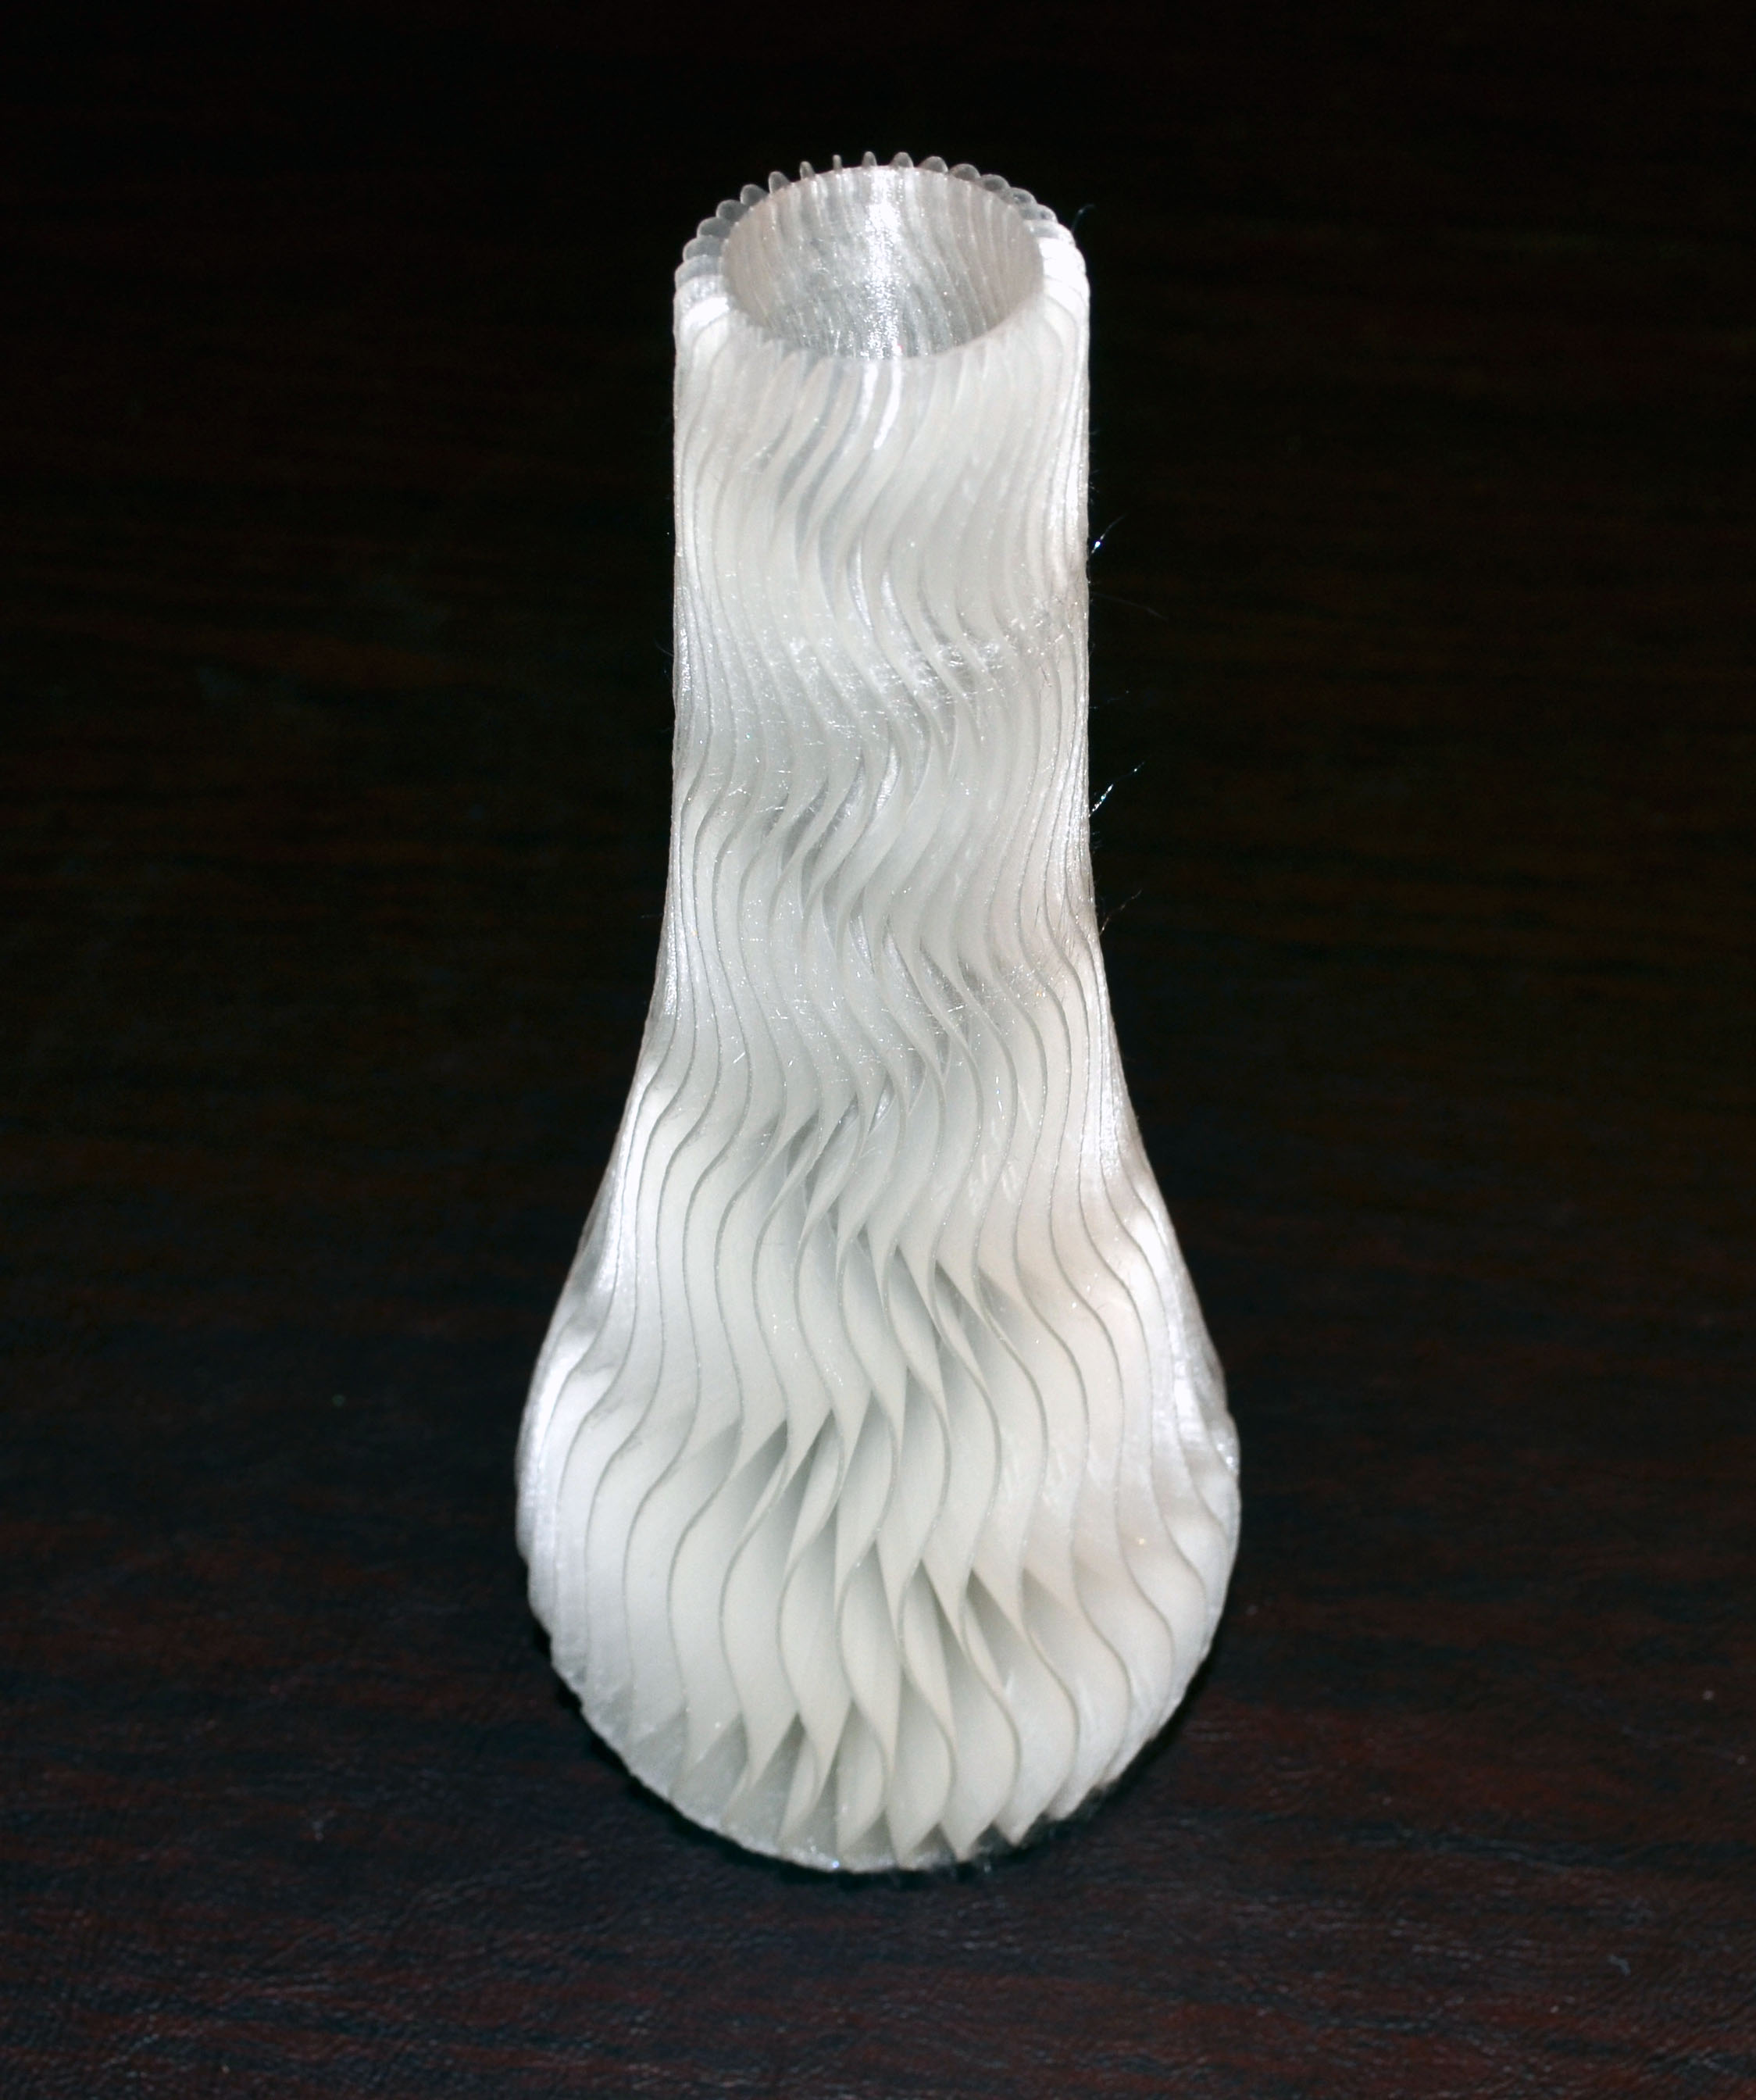 This vase printed wonderfully.